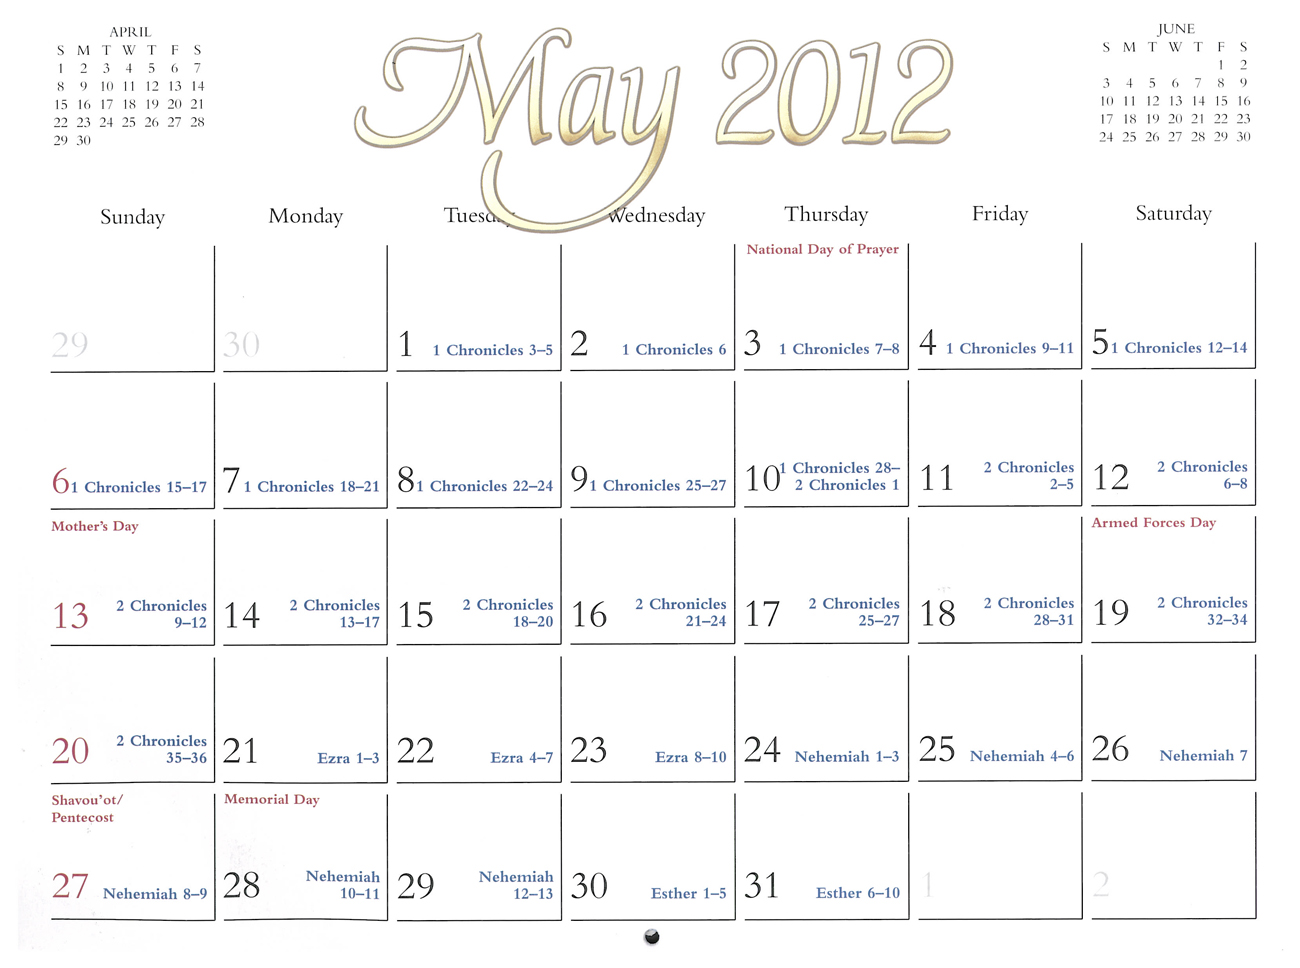 2012 Prophecy Calendar: May - Paul's Letter to the Church at Ephesus